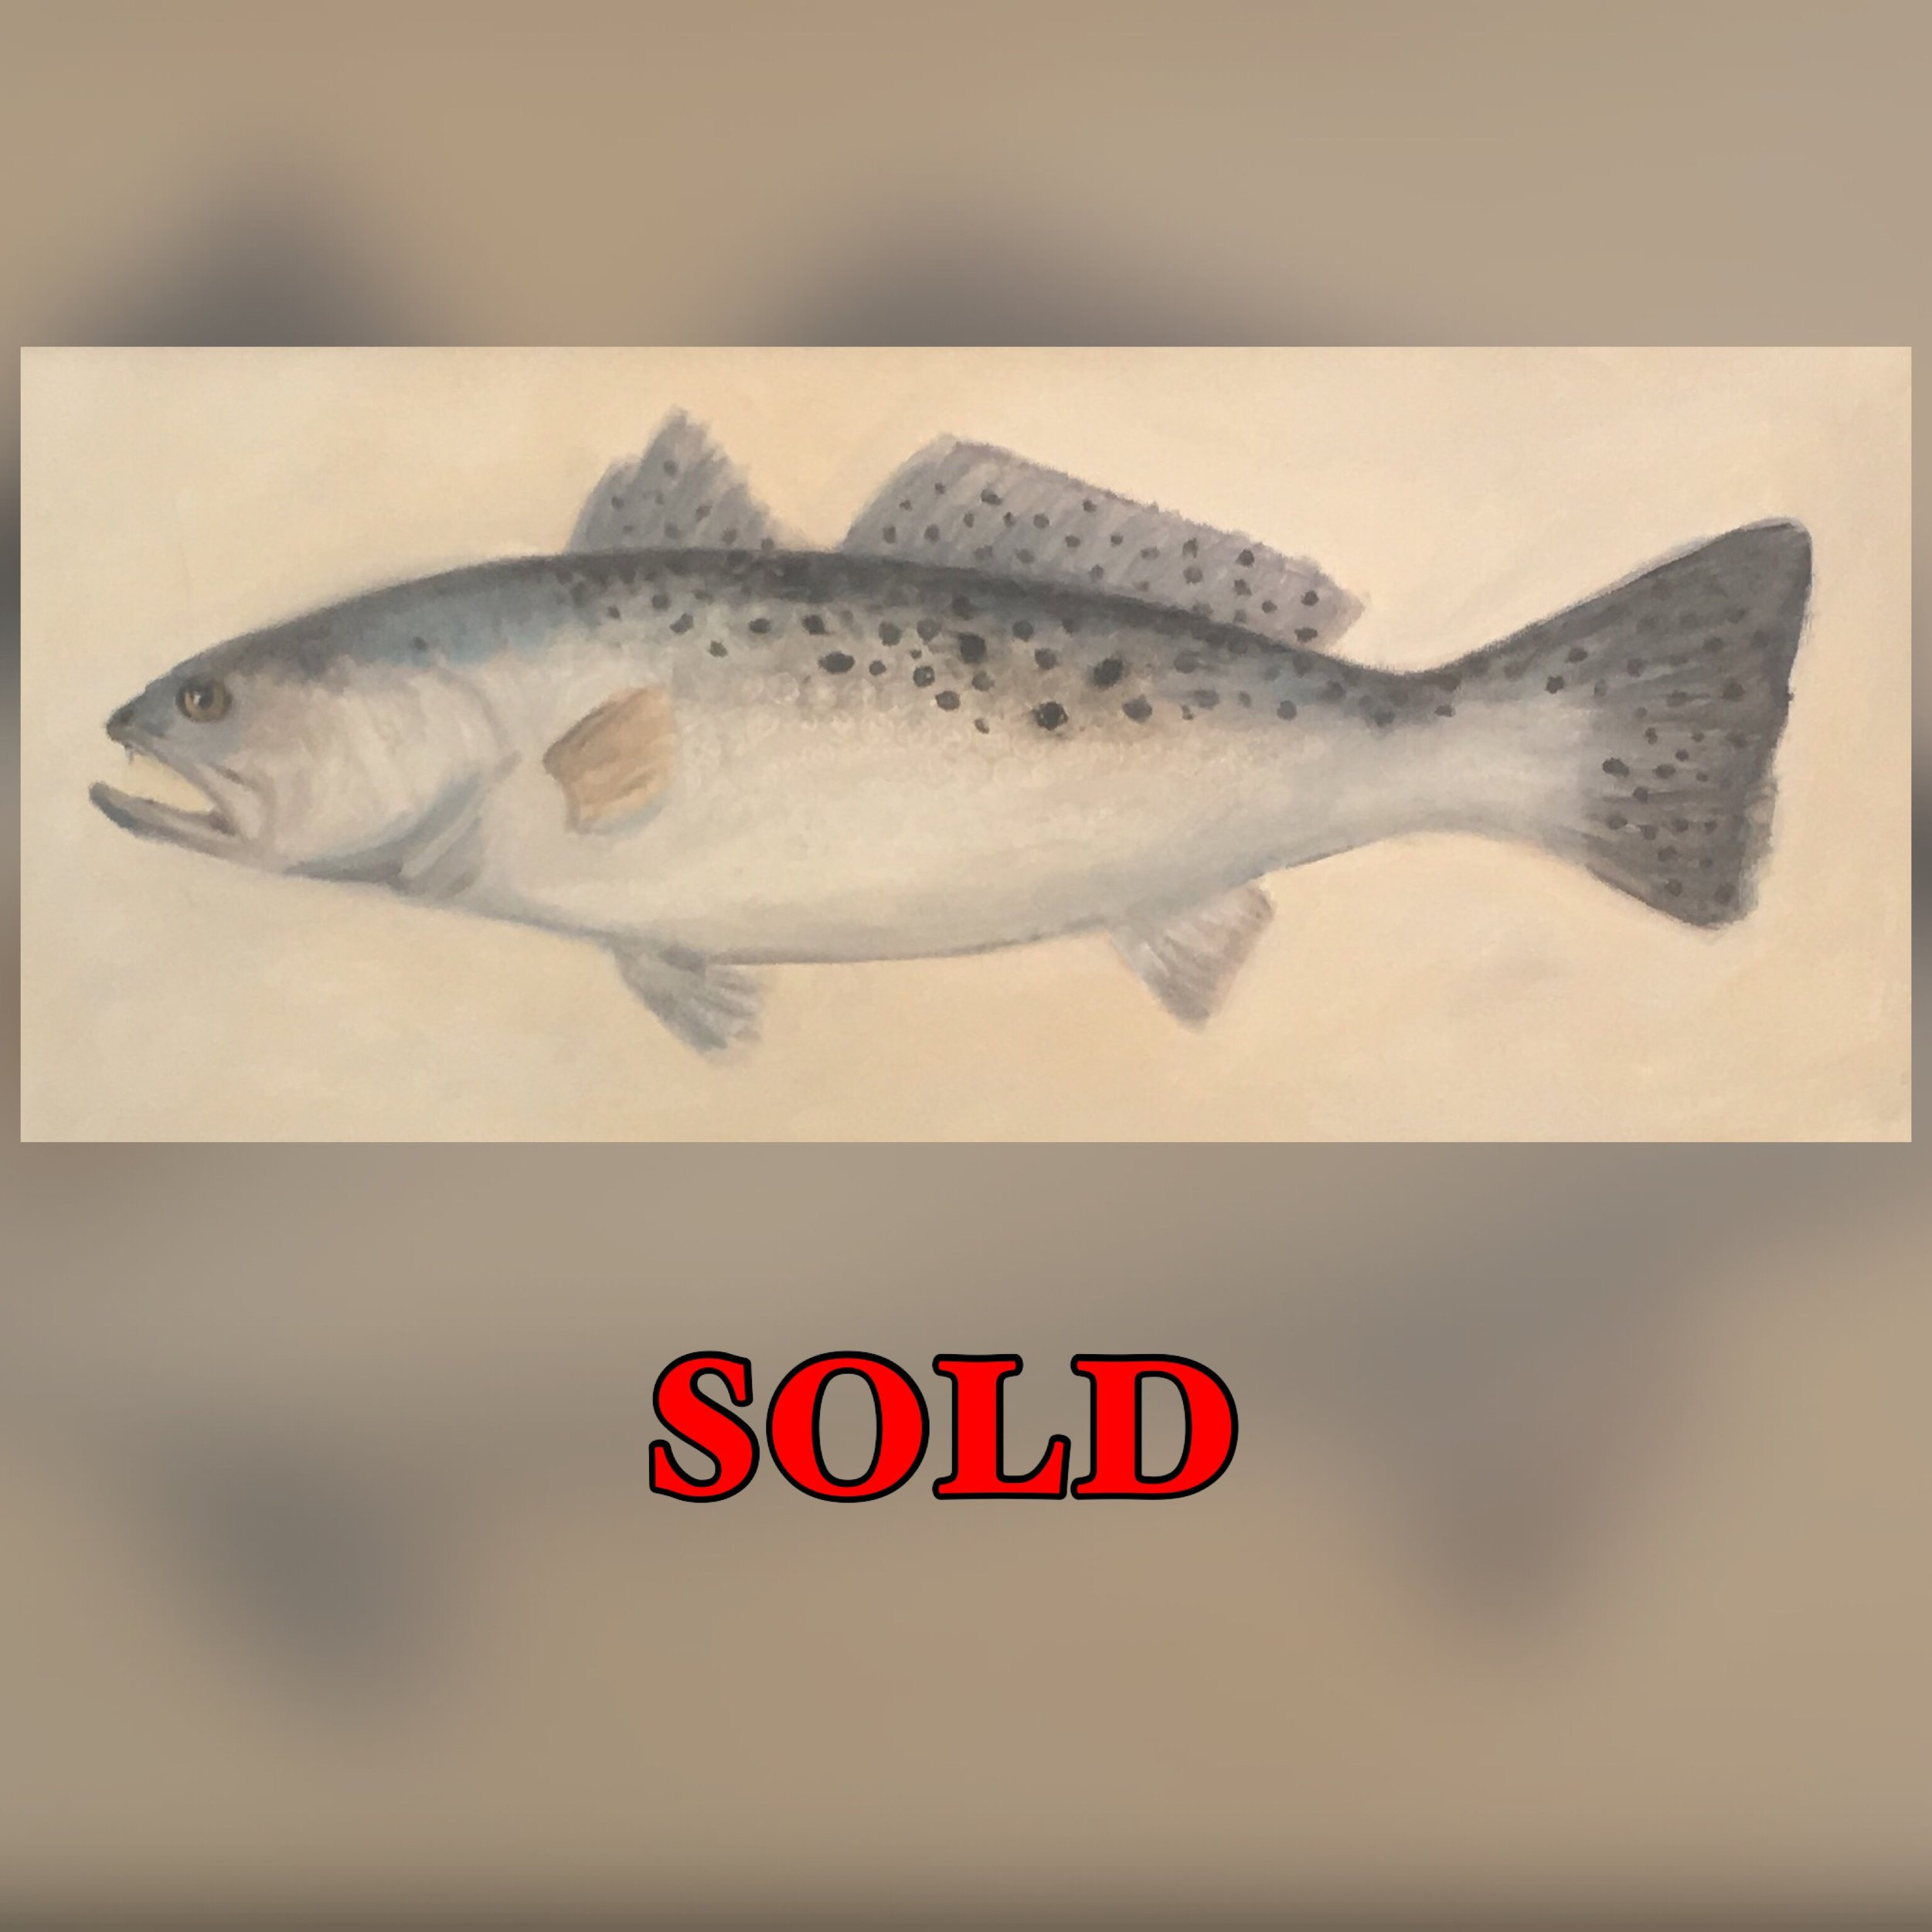 Trout Sold.jpg